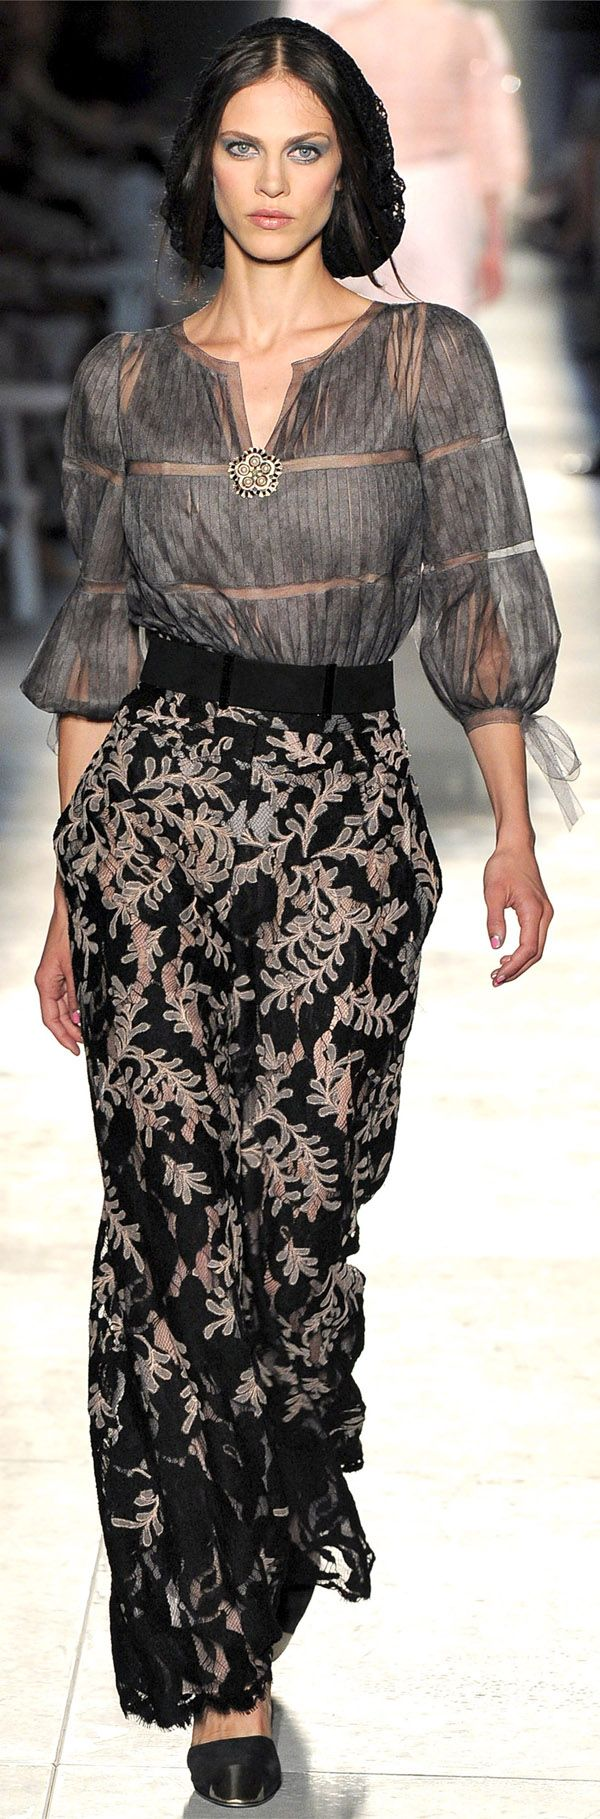 ✜ Chanel | Paris | Winter 2013 ✜ 2012....stunning vintage chic!!!!!!